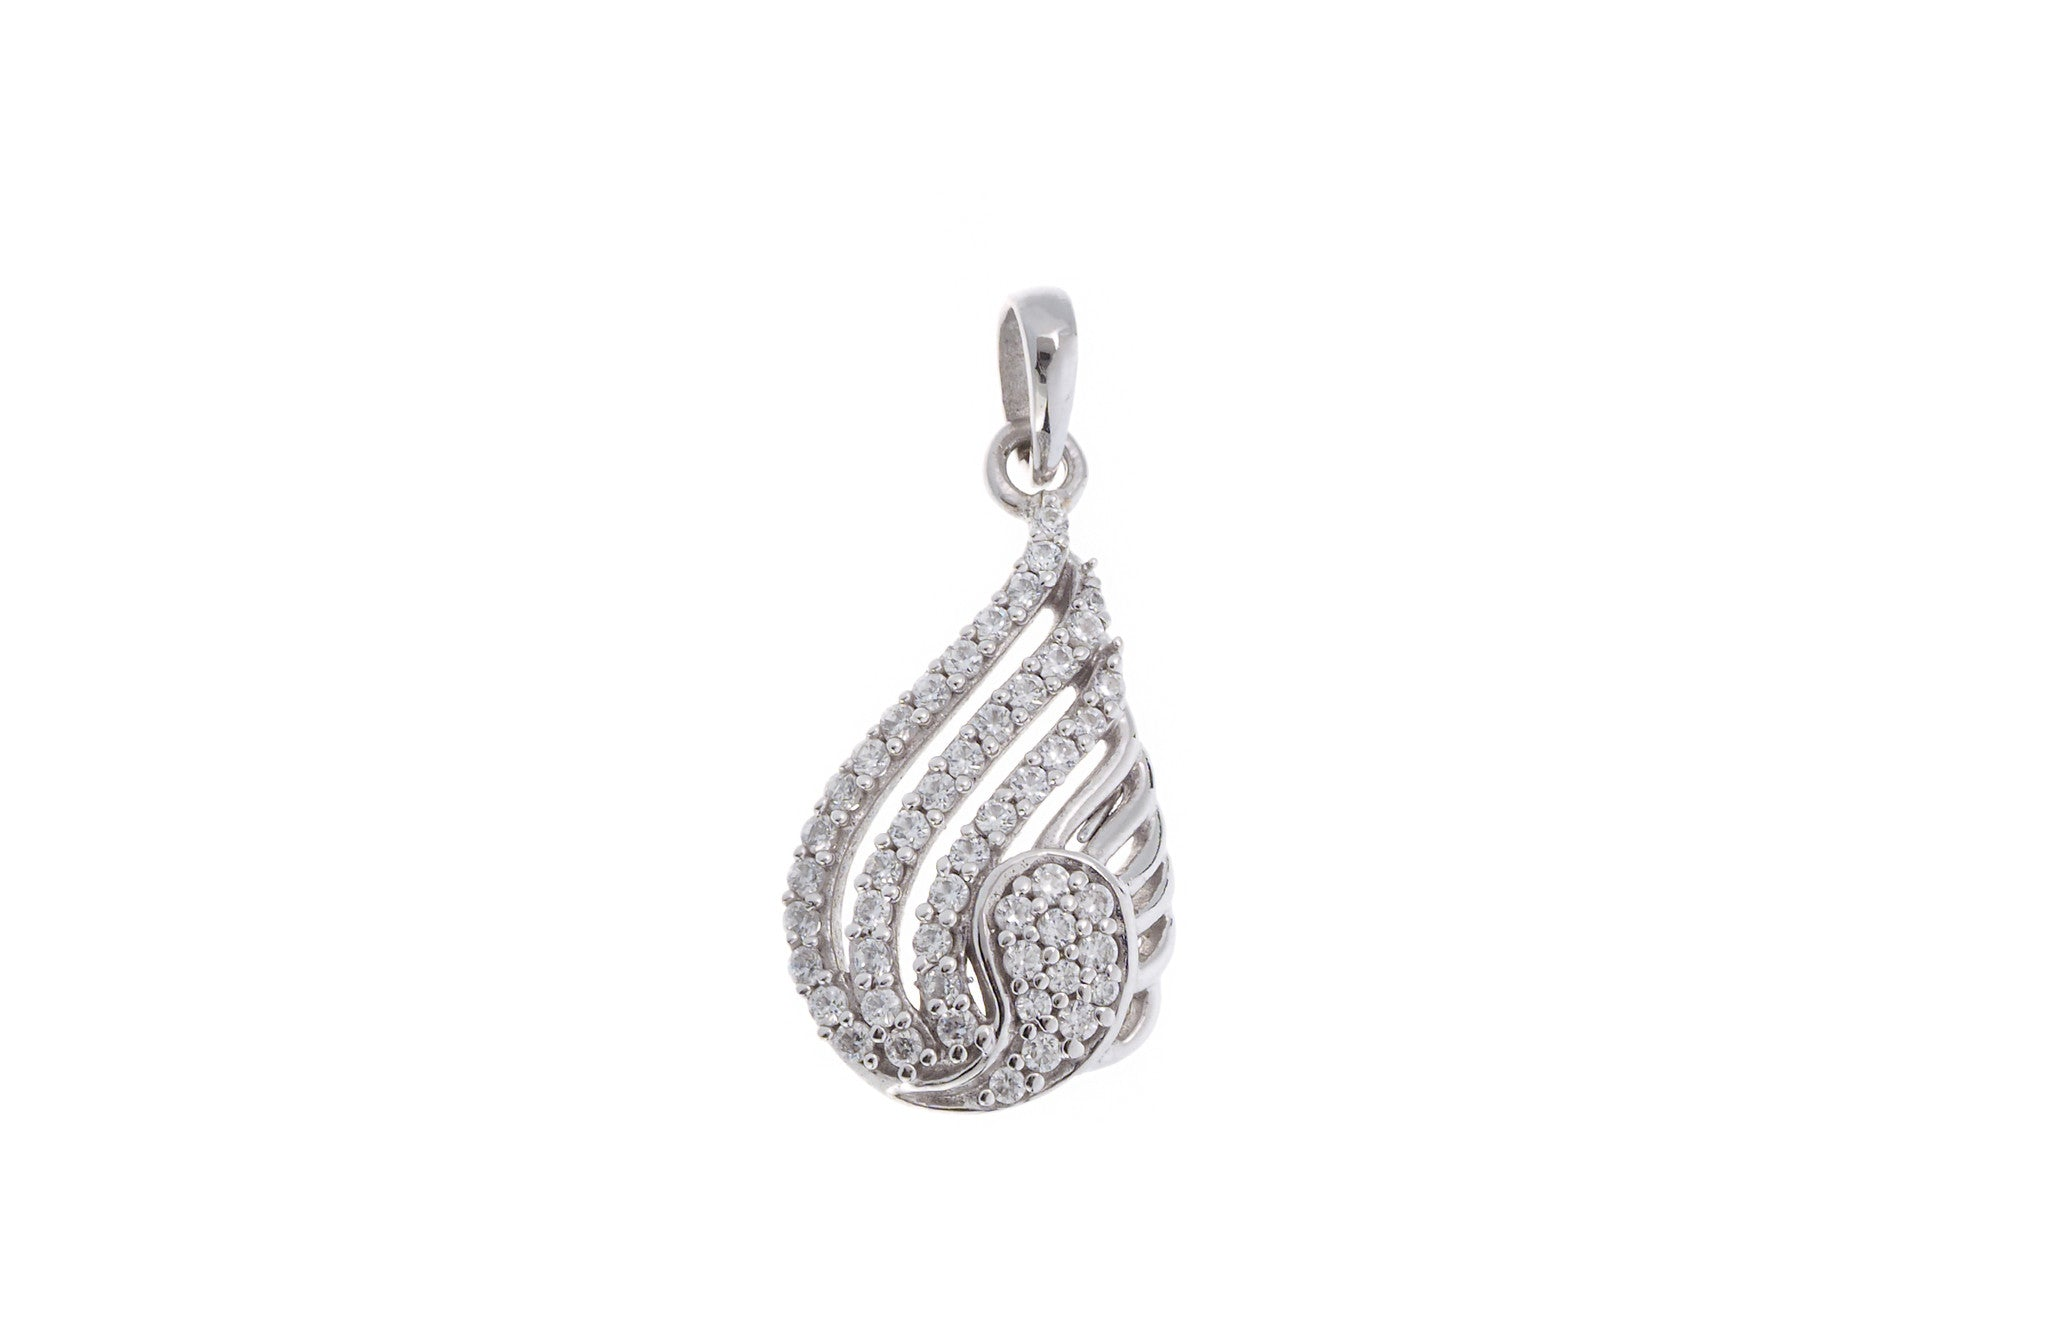 18ct White Gold Cubic Zirconia Pendant, Minar Jewellers - 2